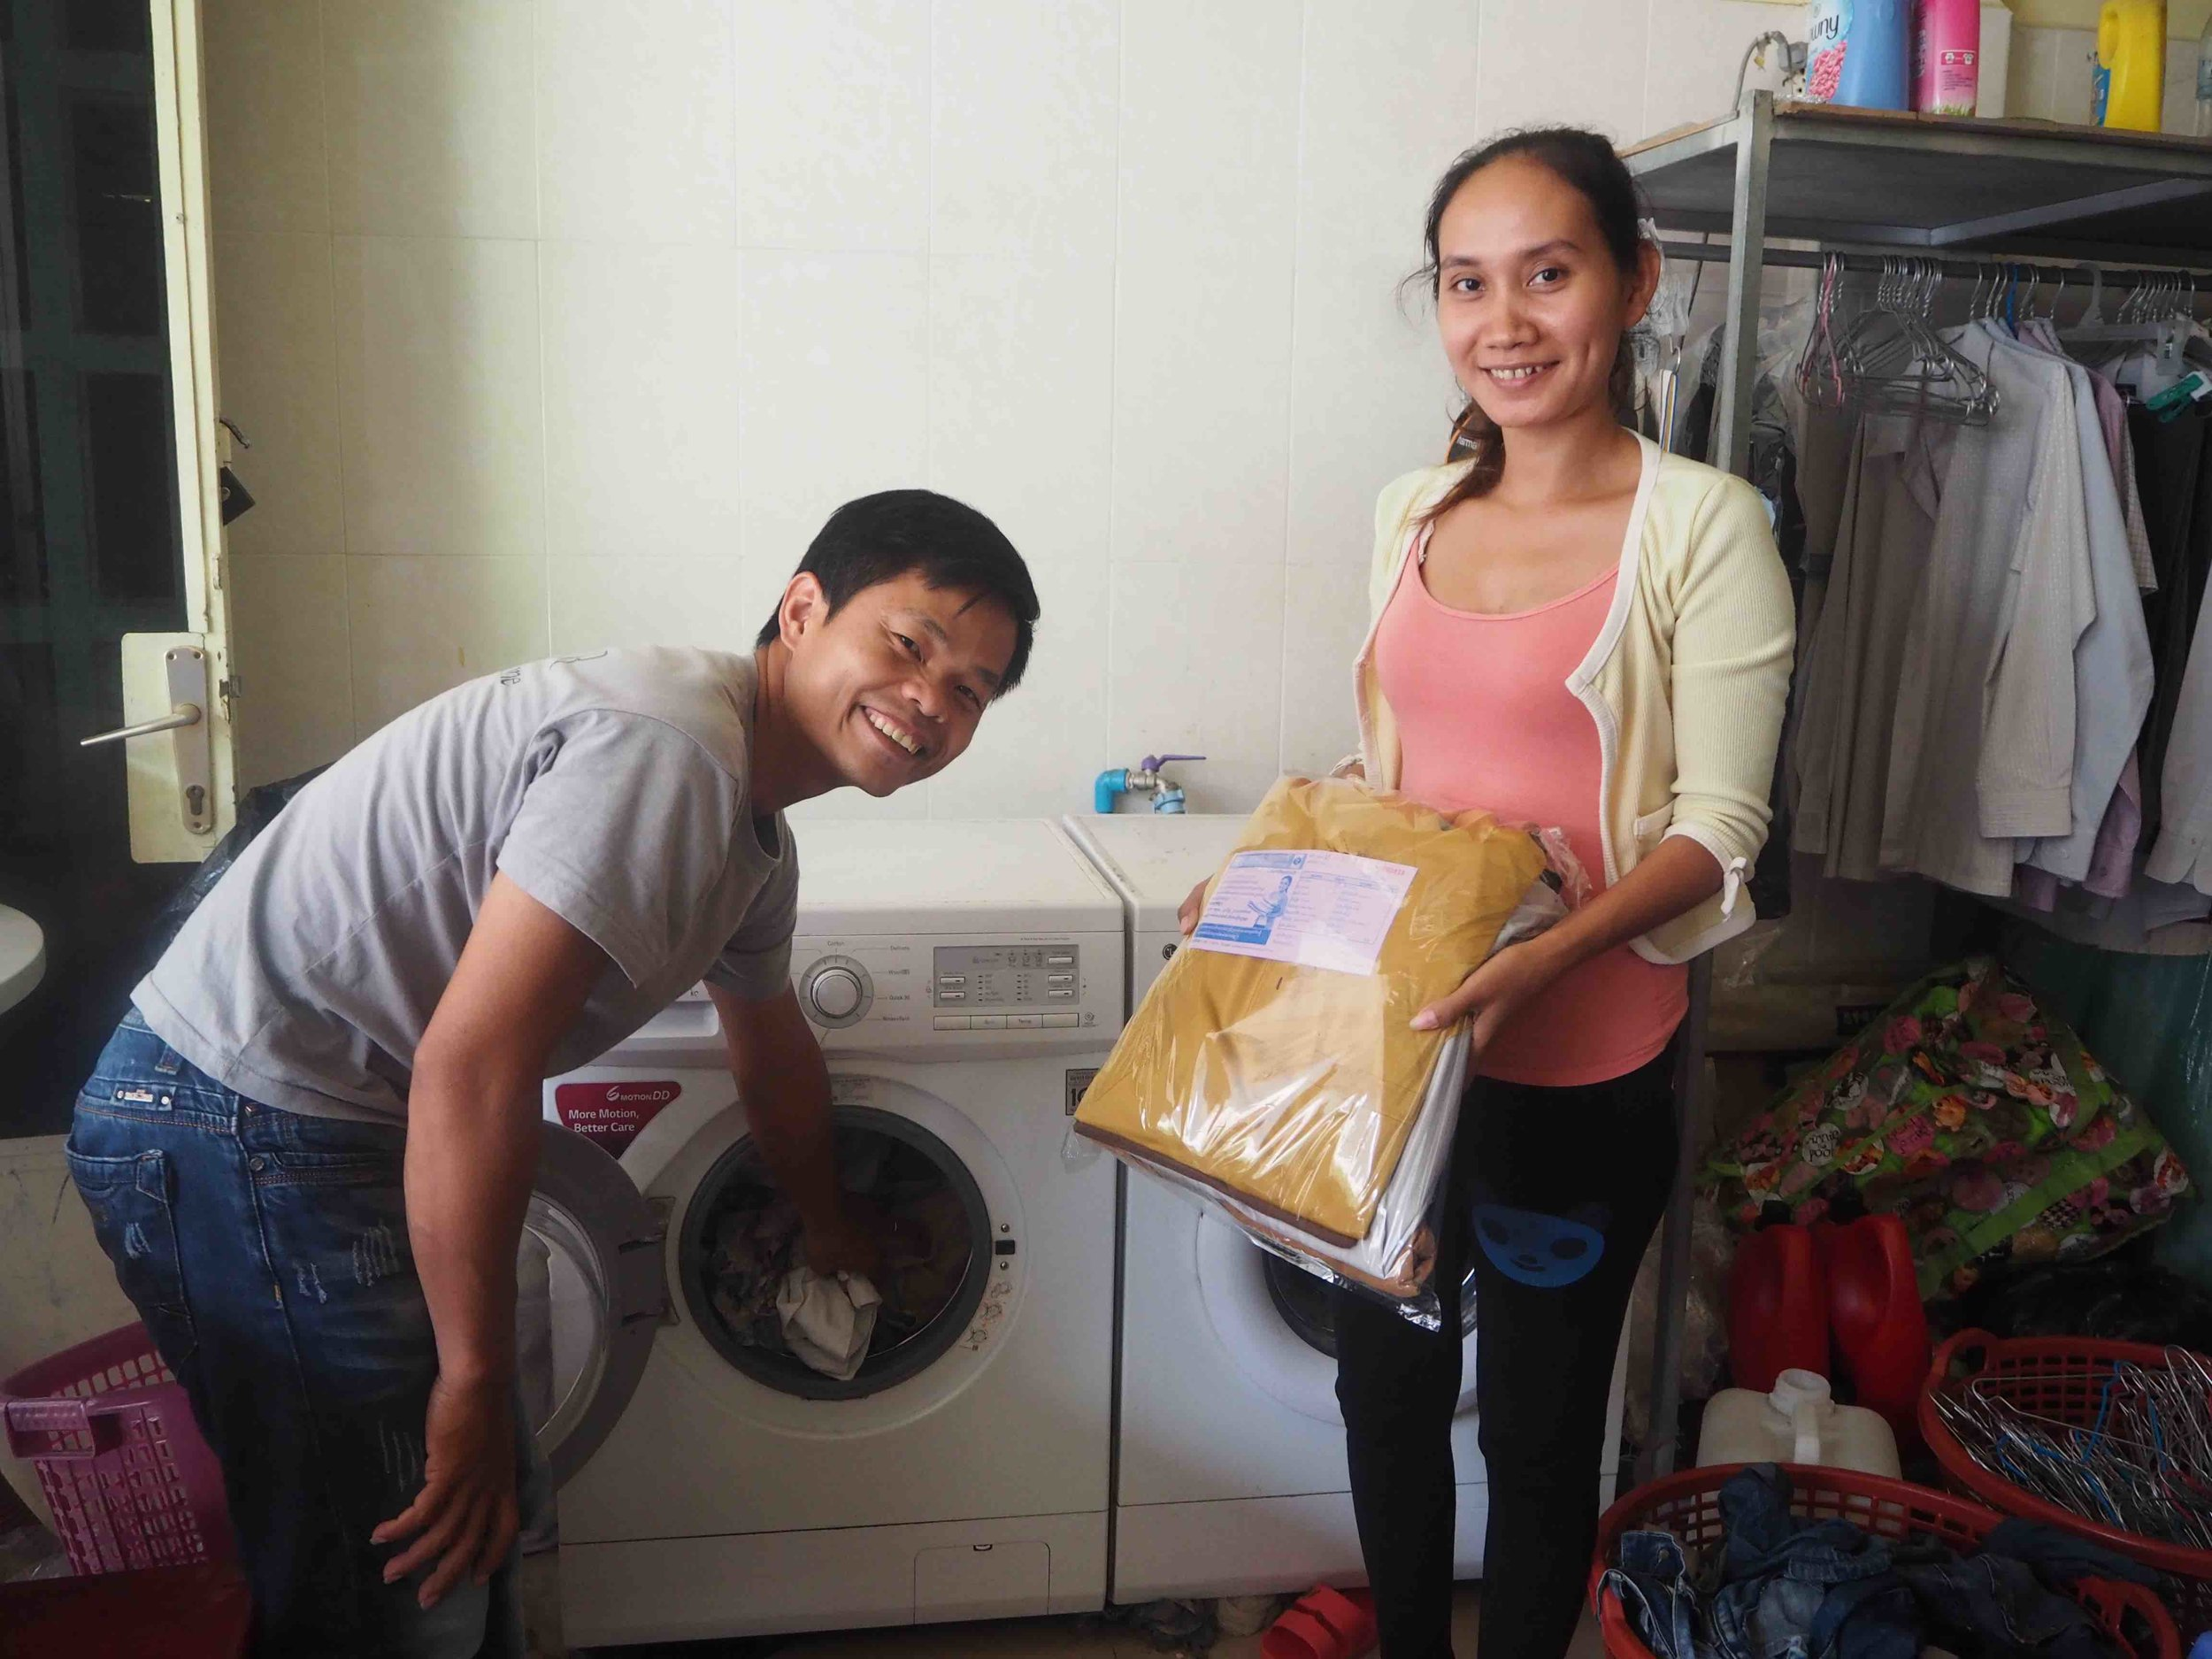 Asian Happiness Laundry    Loan:  Washing machines to increase capacity, create new jobs, and provide vocational training for vulnerable people in their local community